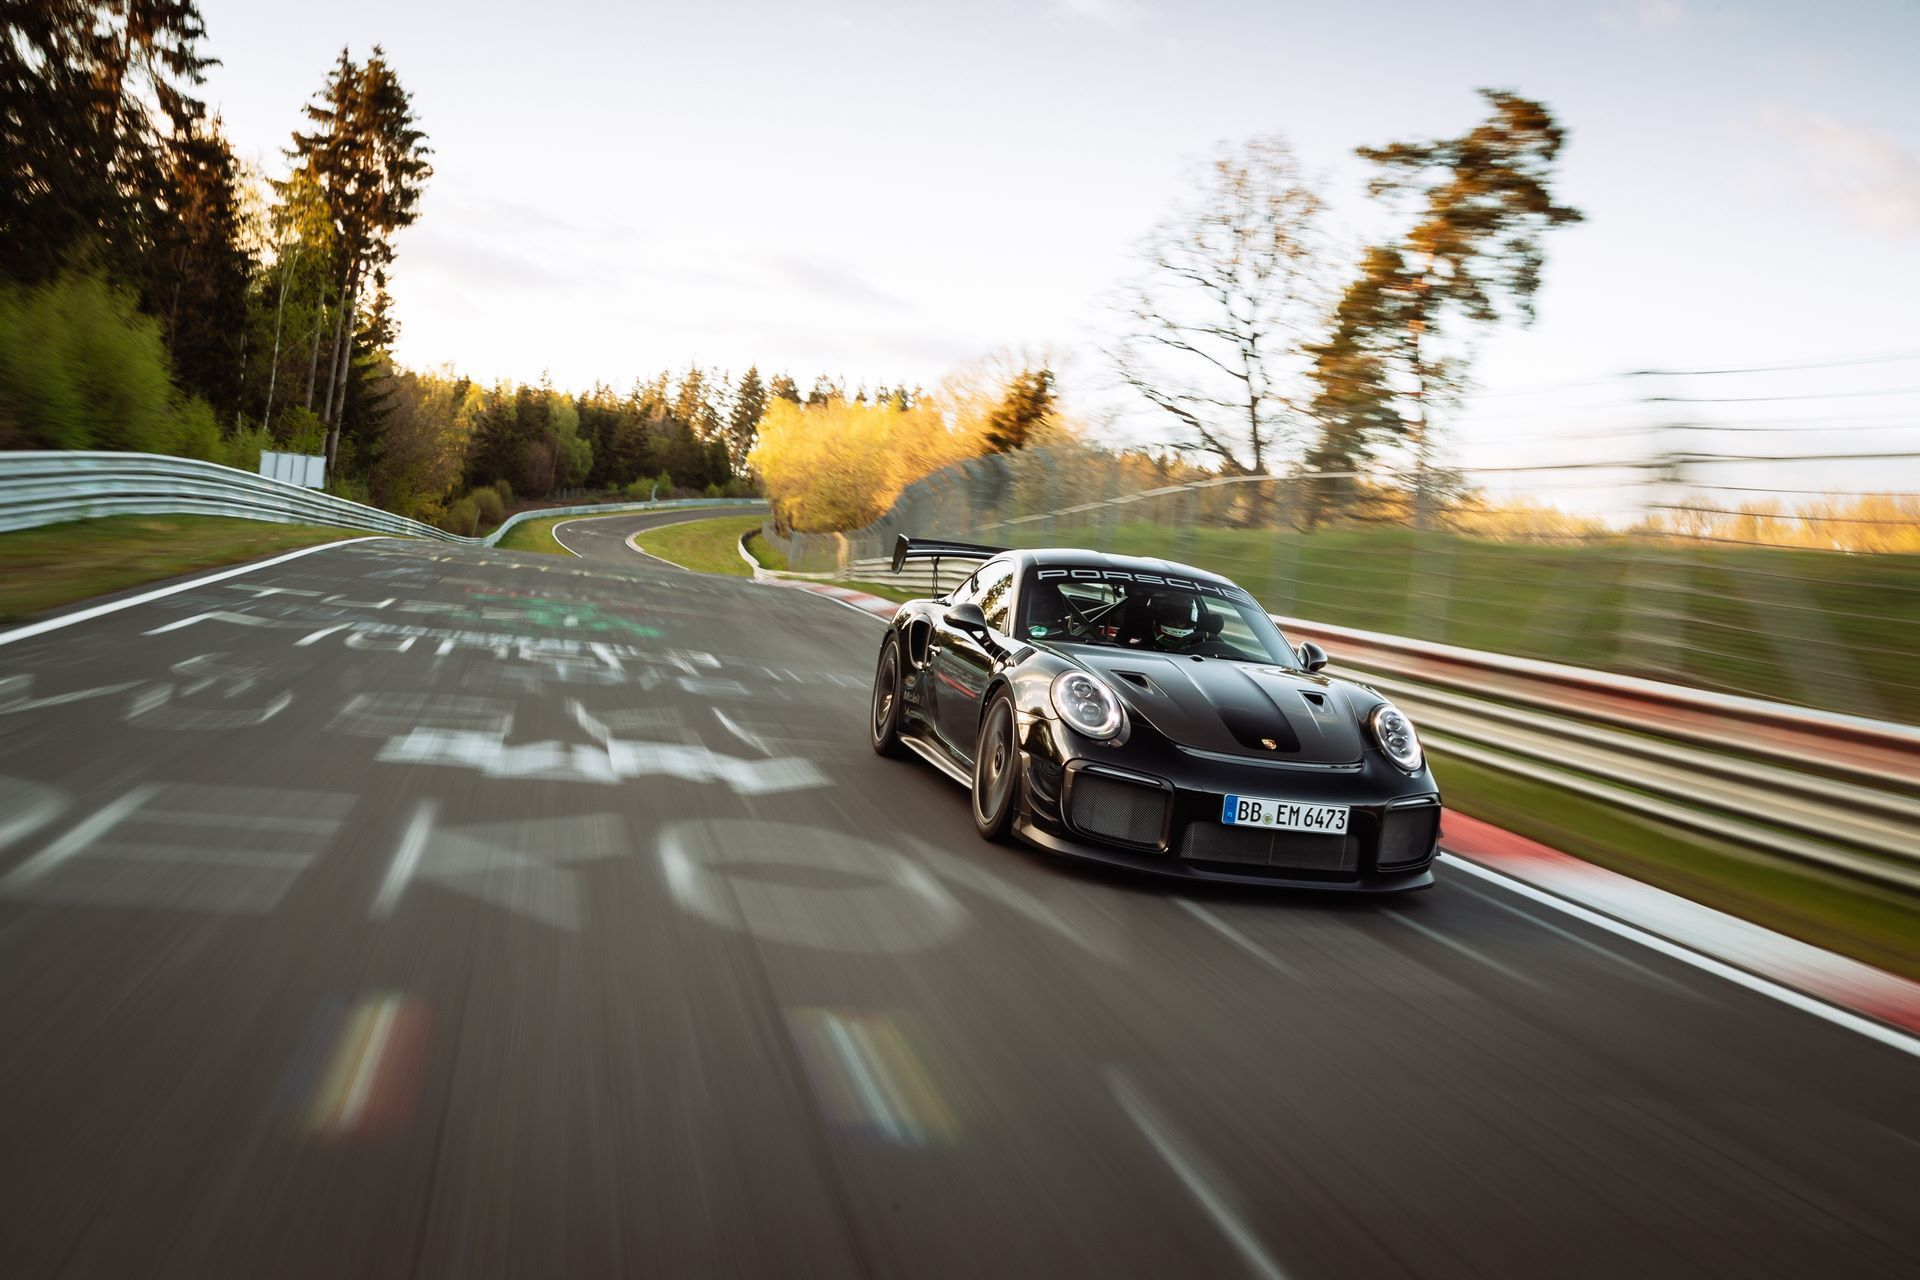 Porsche-911-GT2-RS-Manthey-Performance-Kit-Nurburgring-Record-7